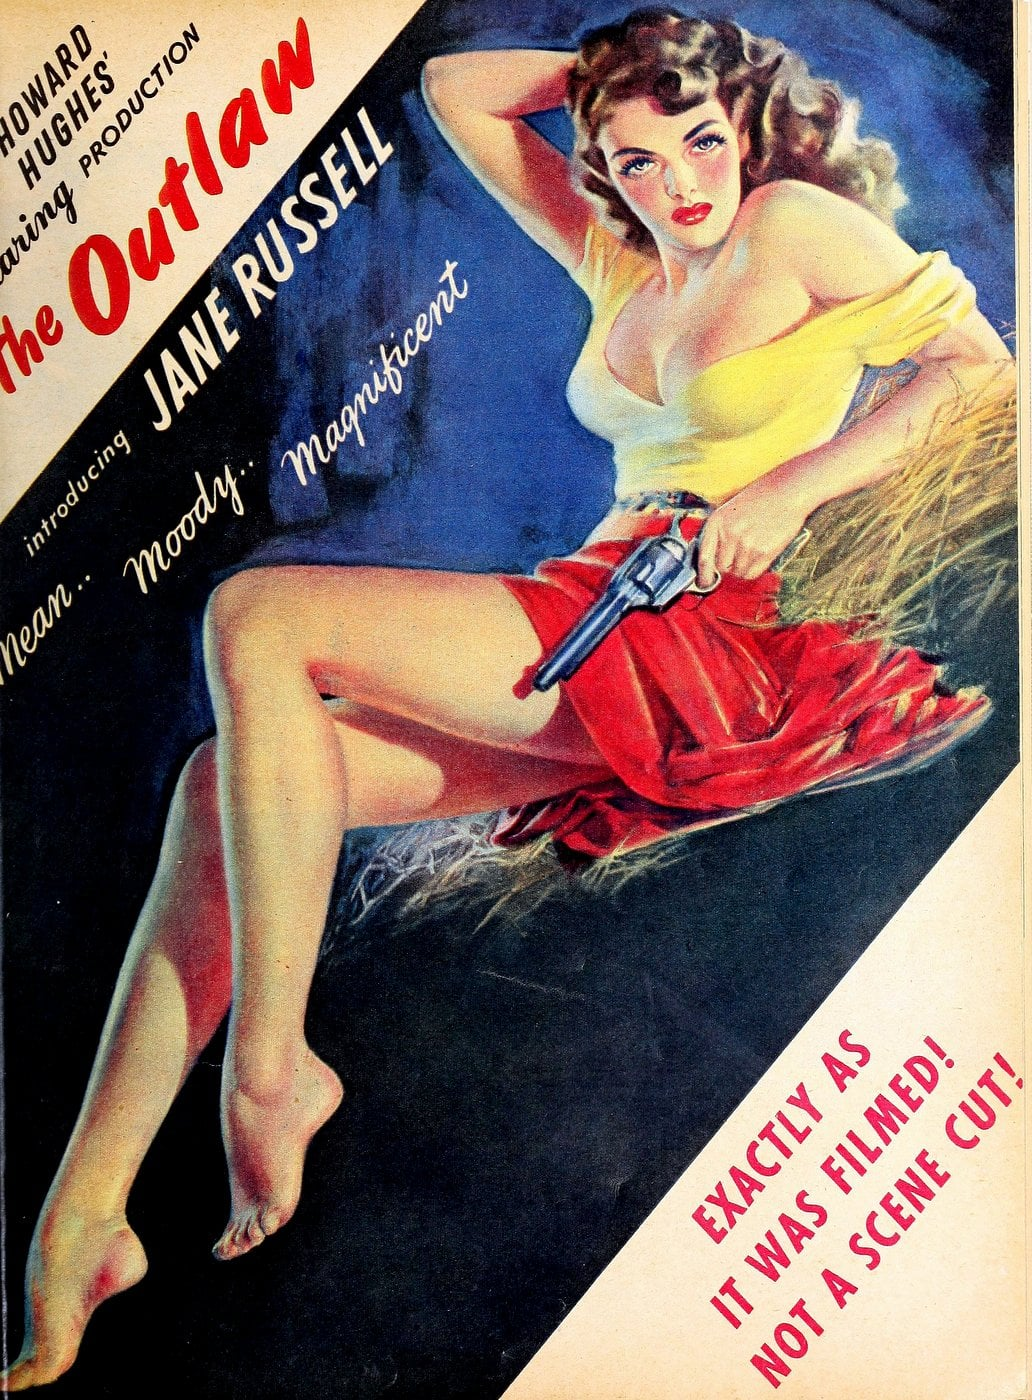 Classic film The Outlaw with Jane Russell - Howard Hughes movie